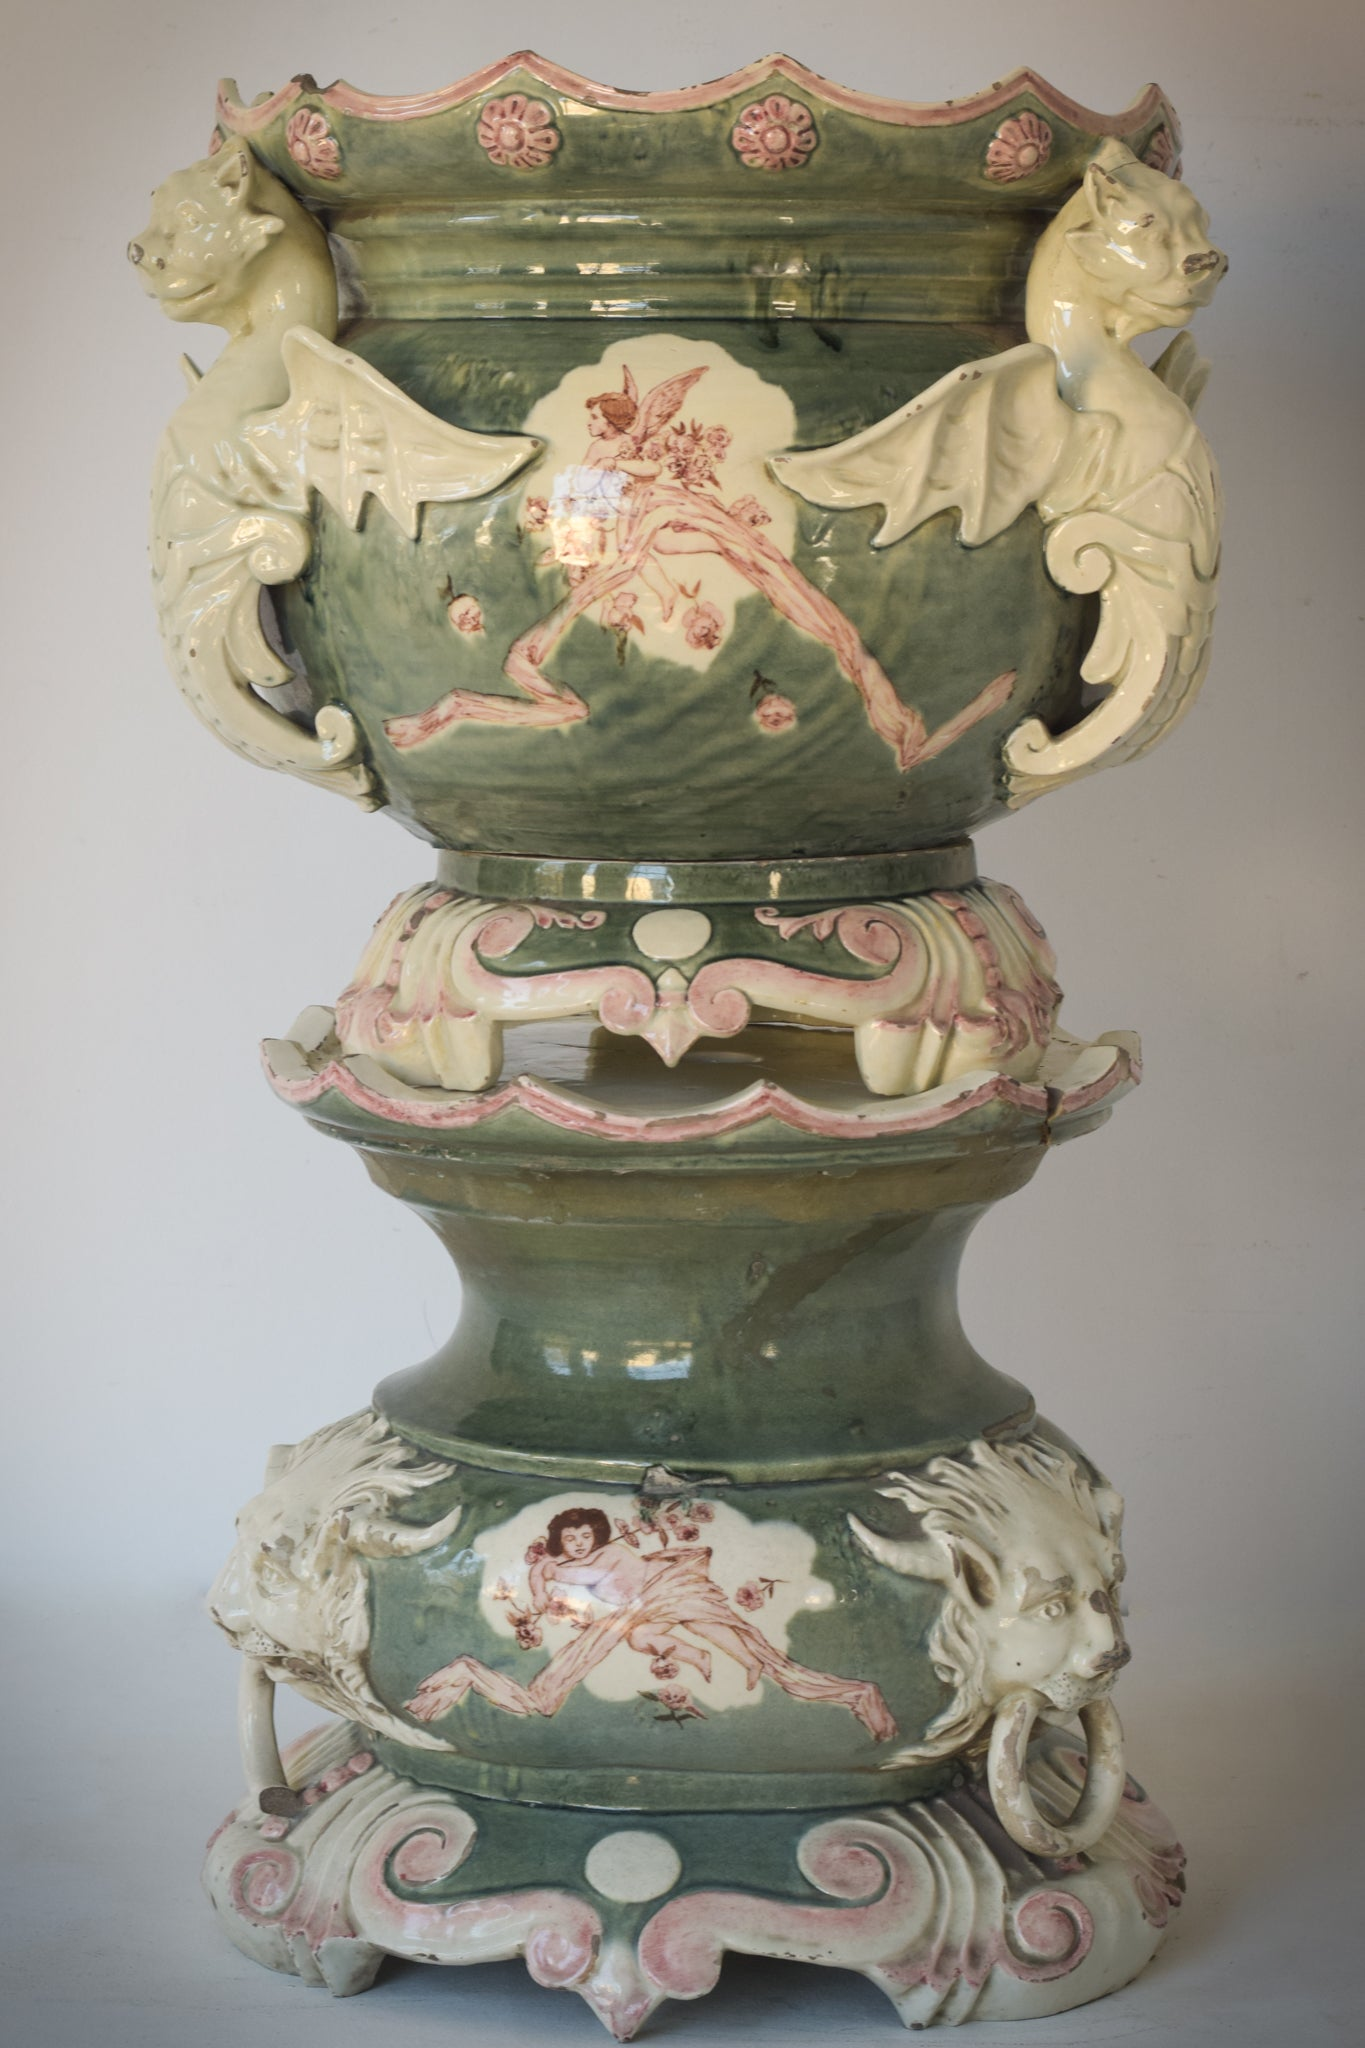 Massive Magnificent Decorative Jardinière With Lots of Character